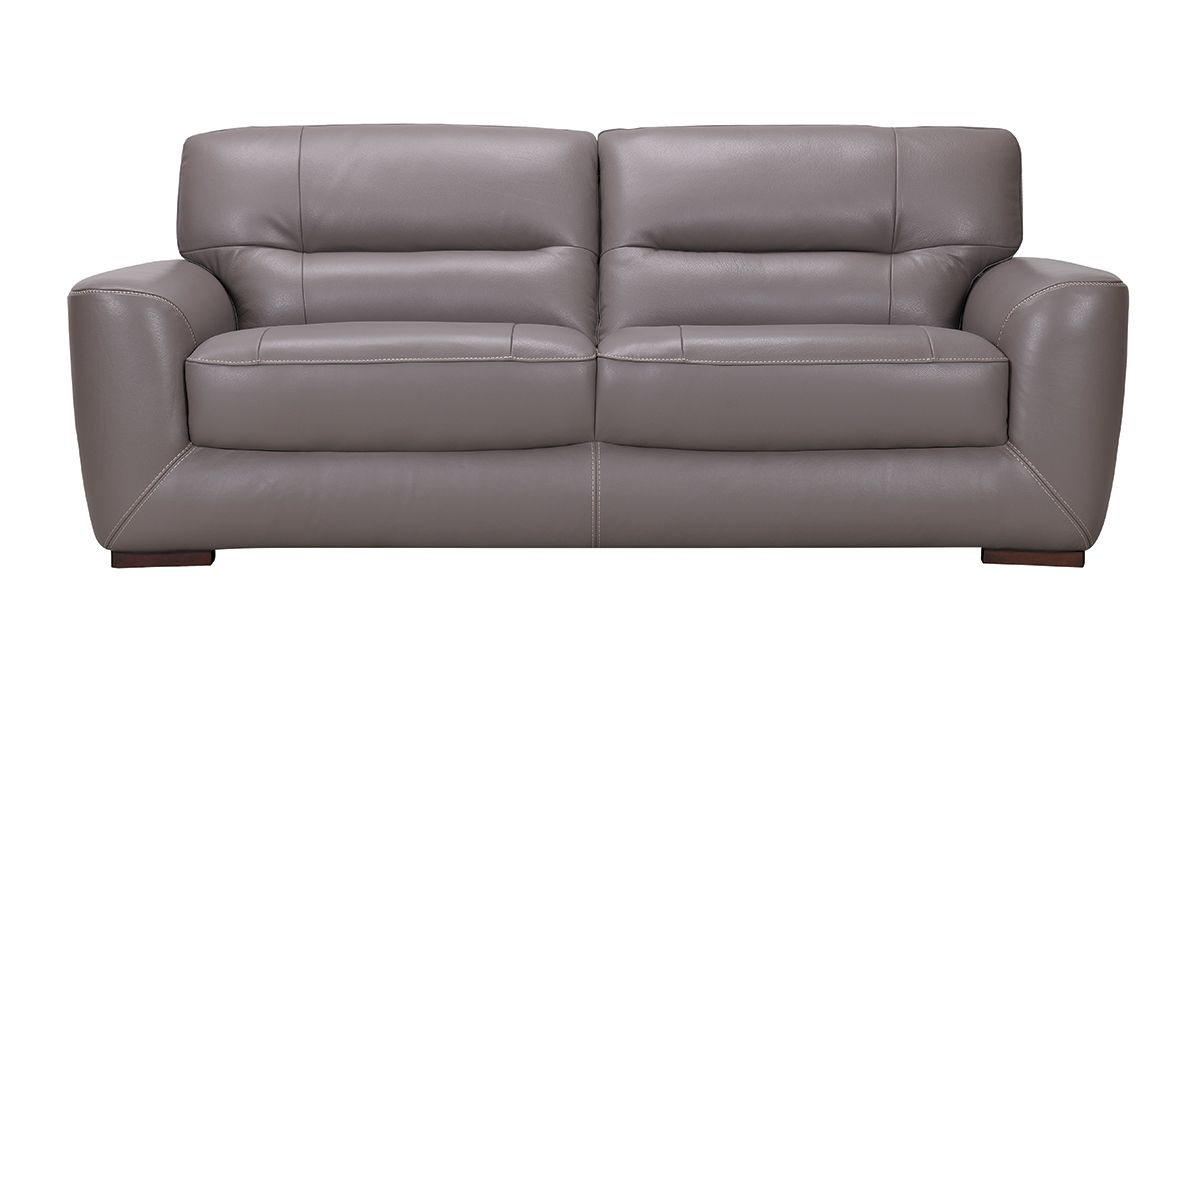 The Dump Furniture - Delia Sofa